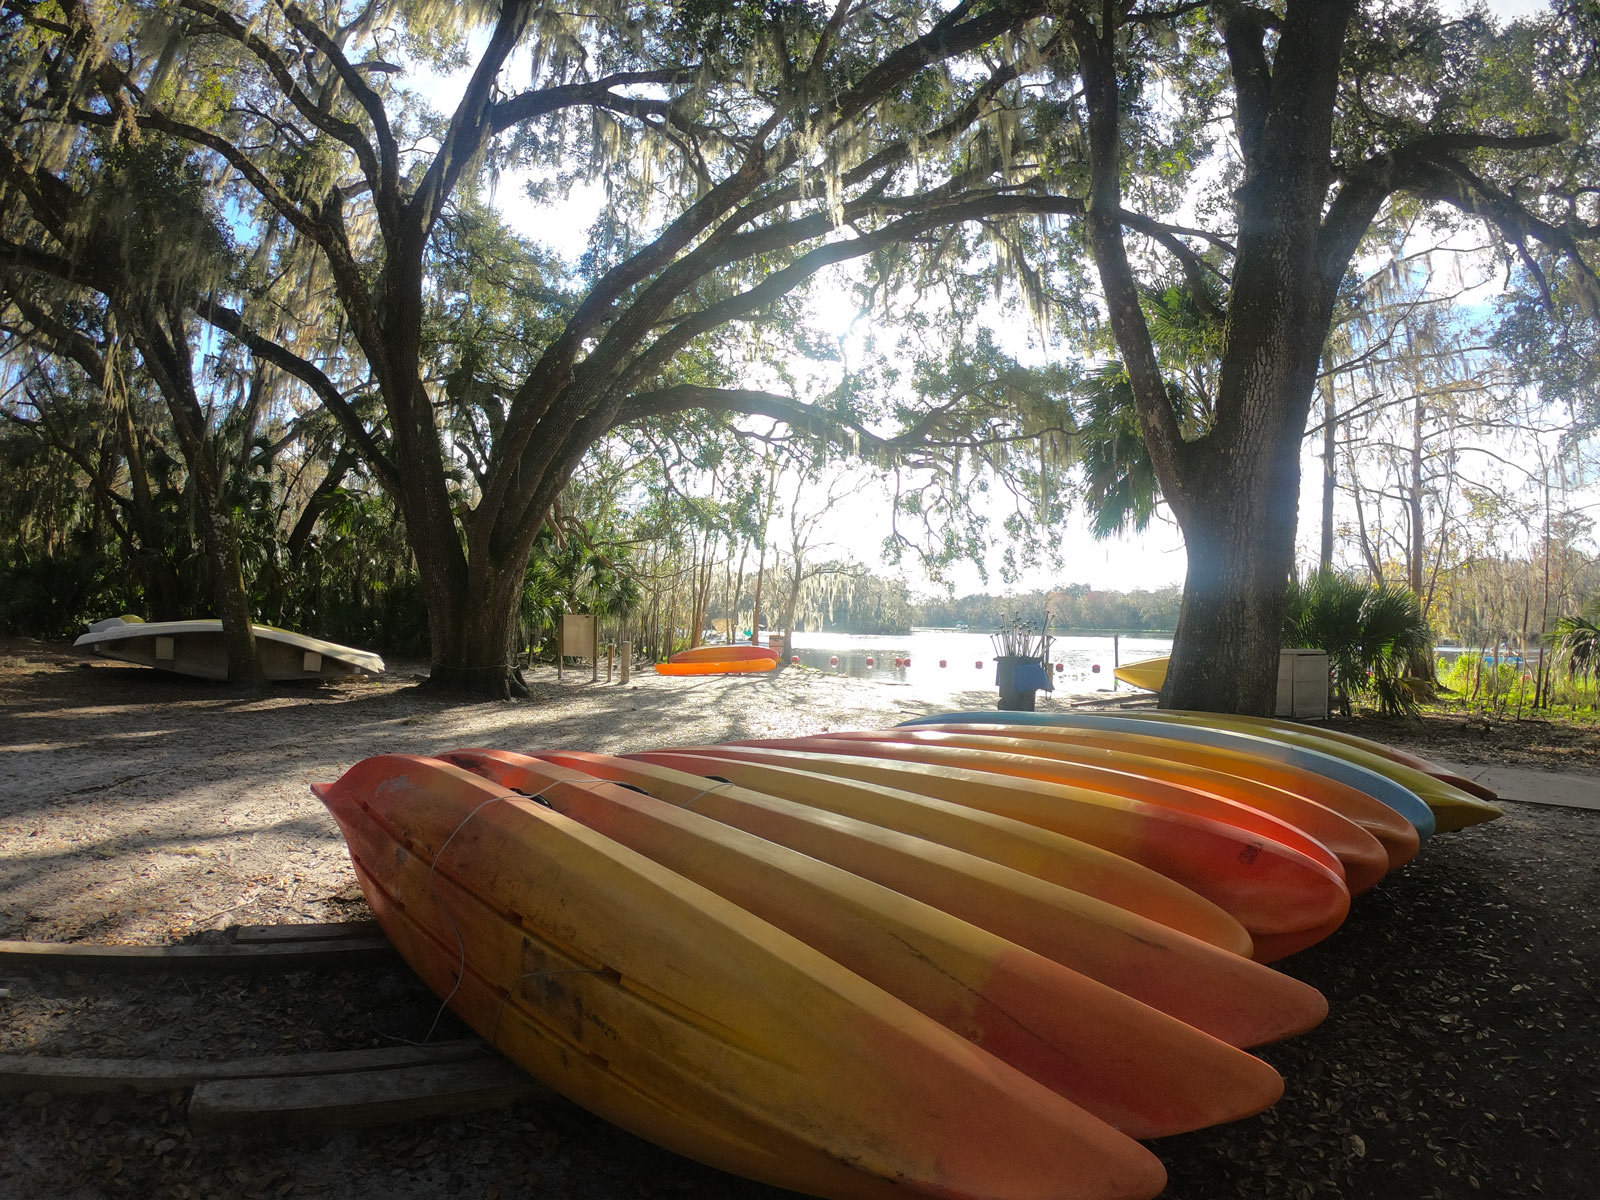 A row of yellow canoes under live oaks draped in Spanish moss on St Johns River at Blue Spring State Park, Florida